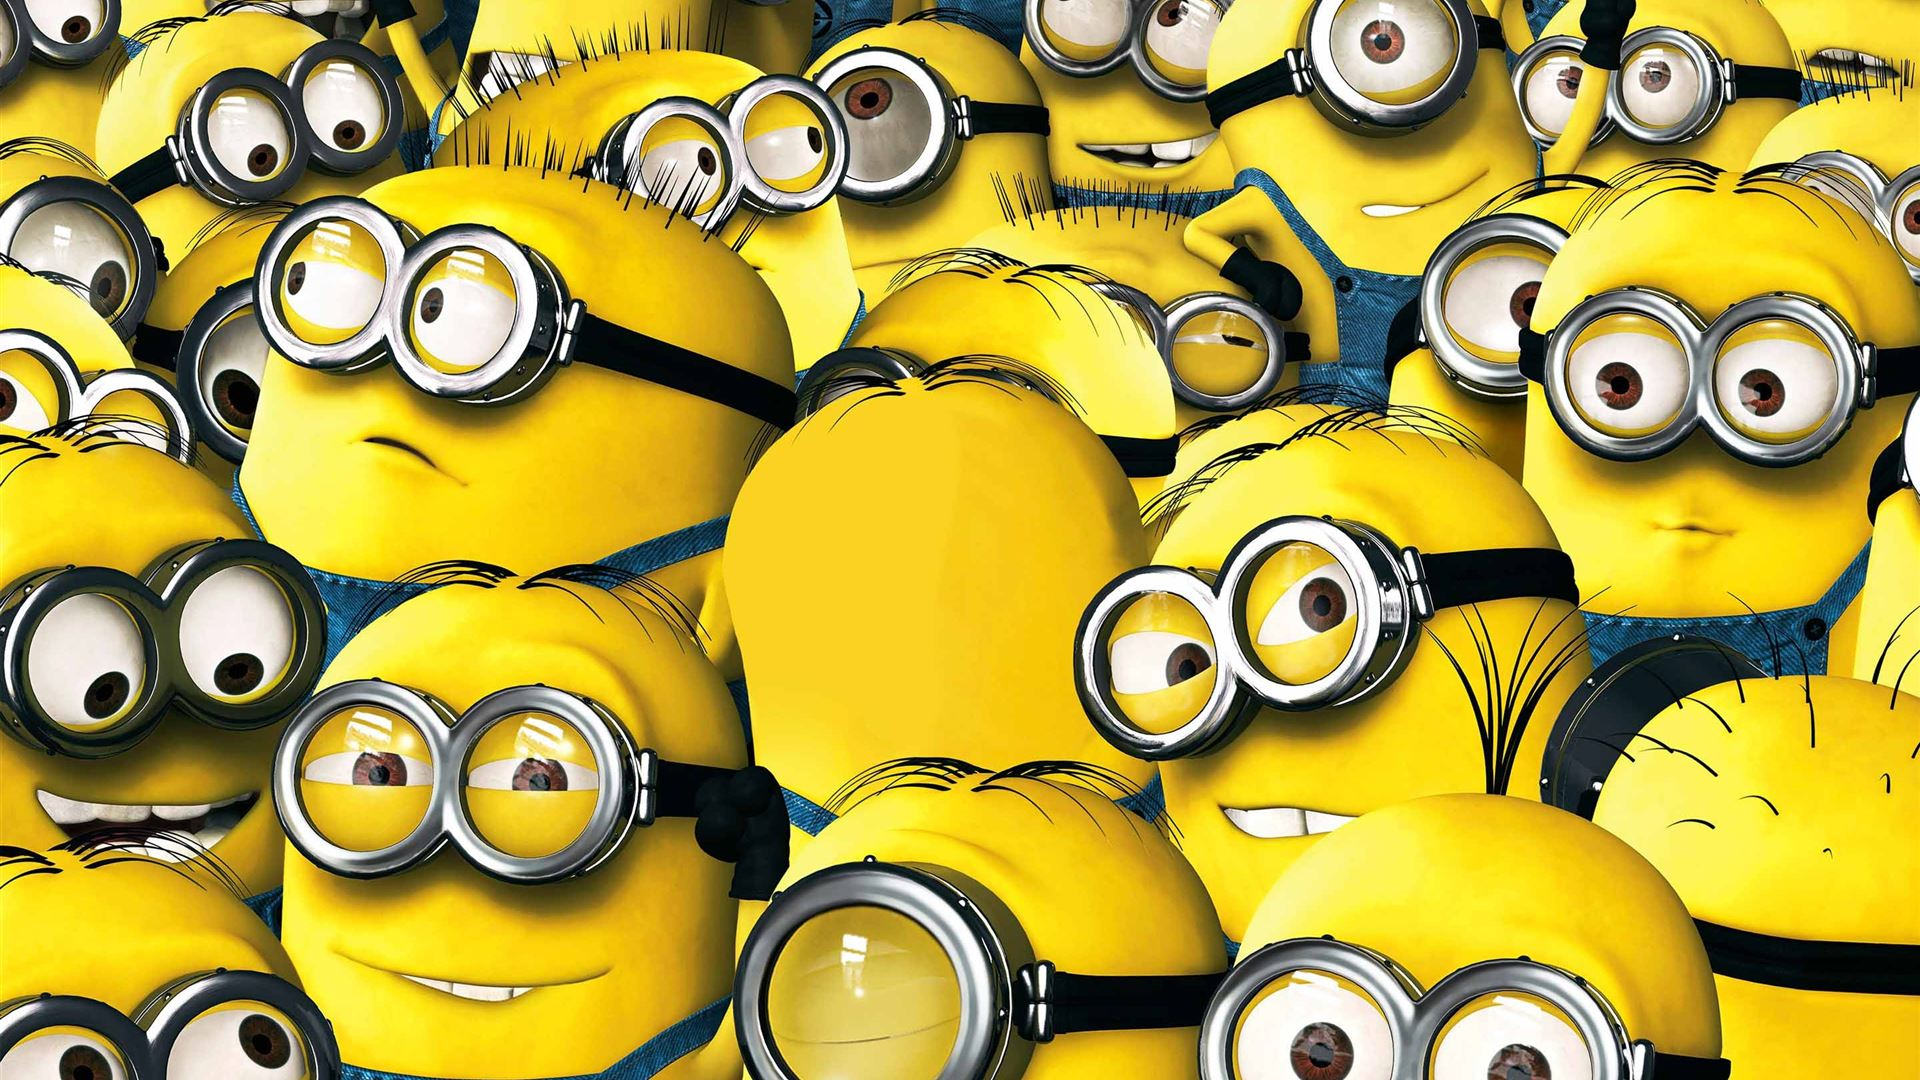 Minions 2015 Macbook Air Wallpaper Download Allmacwallpaper